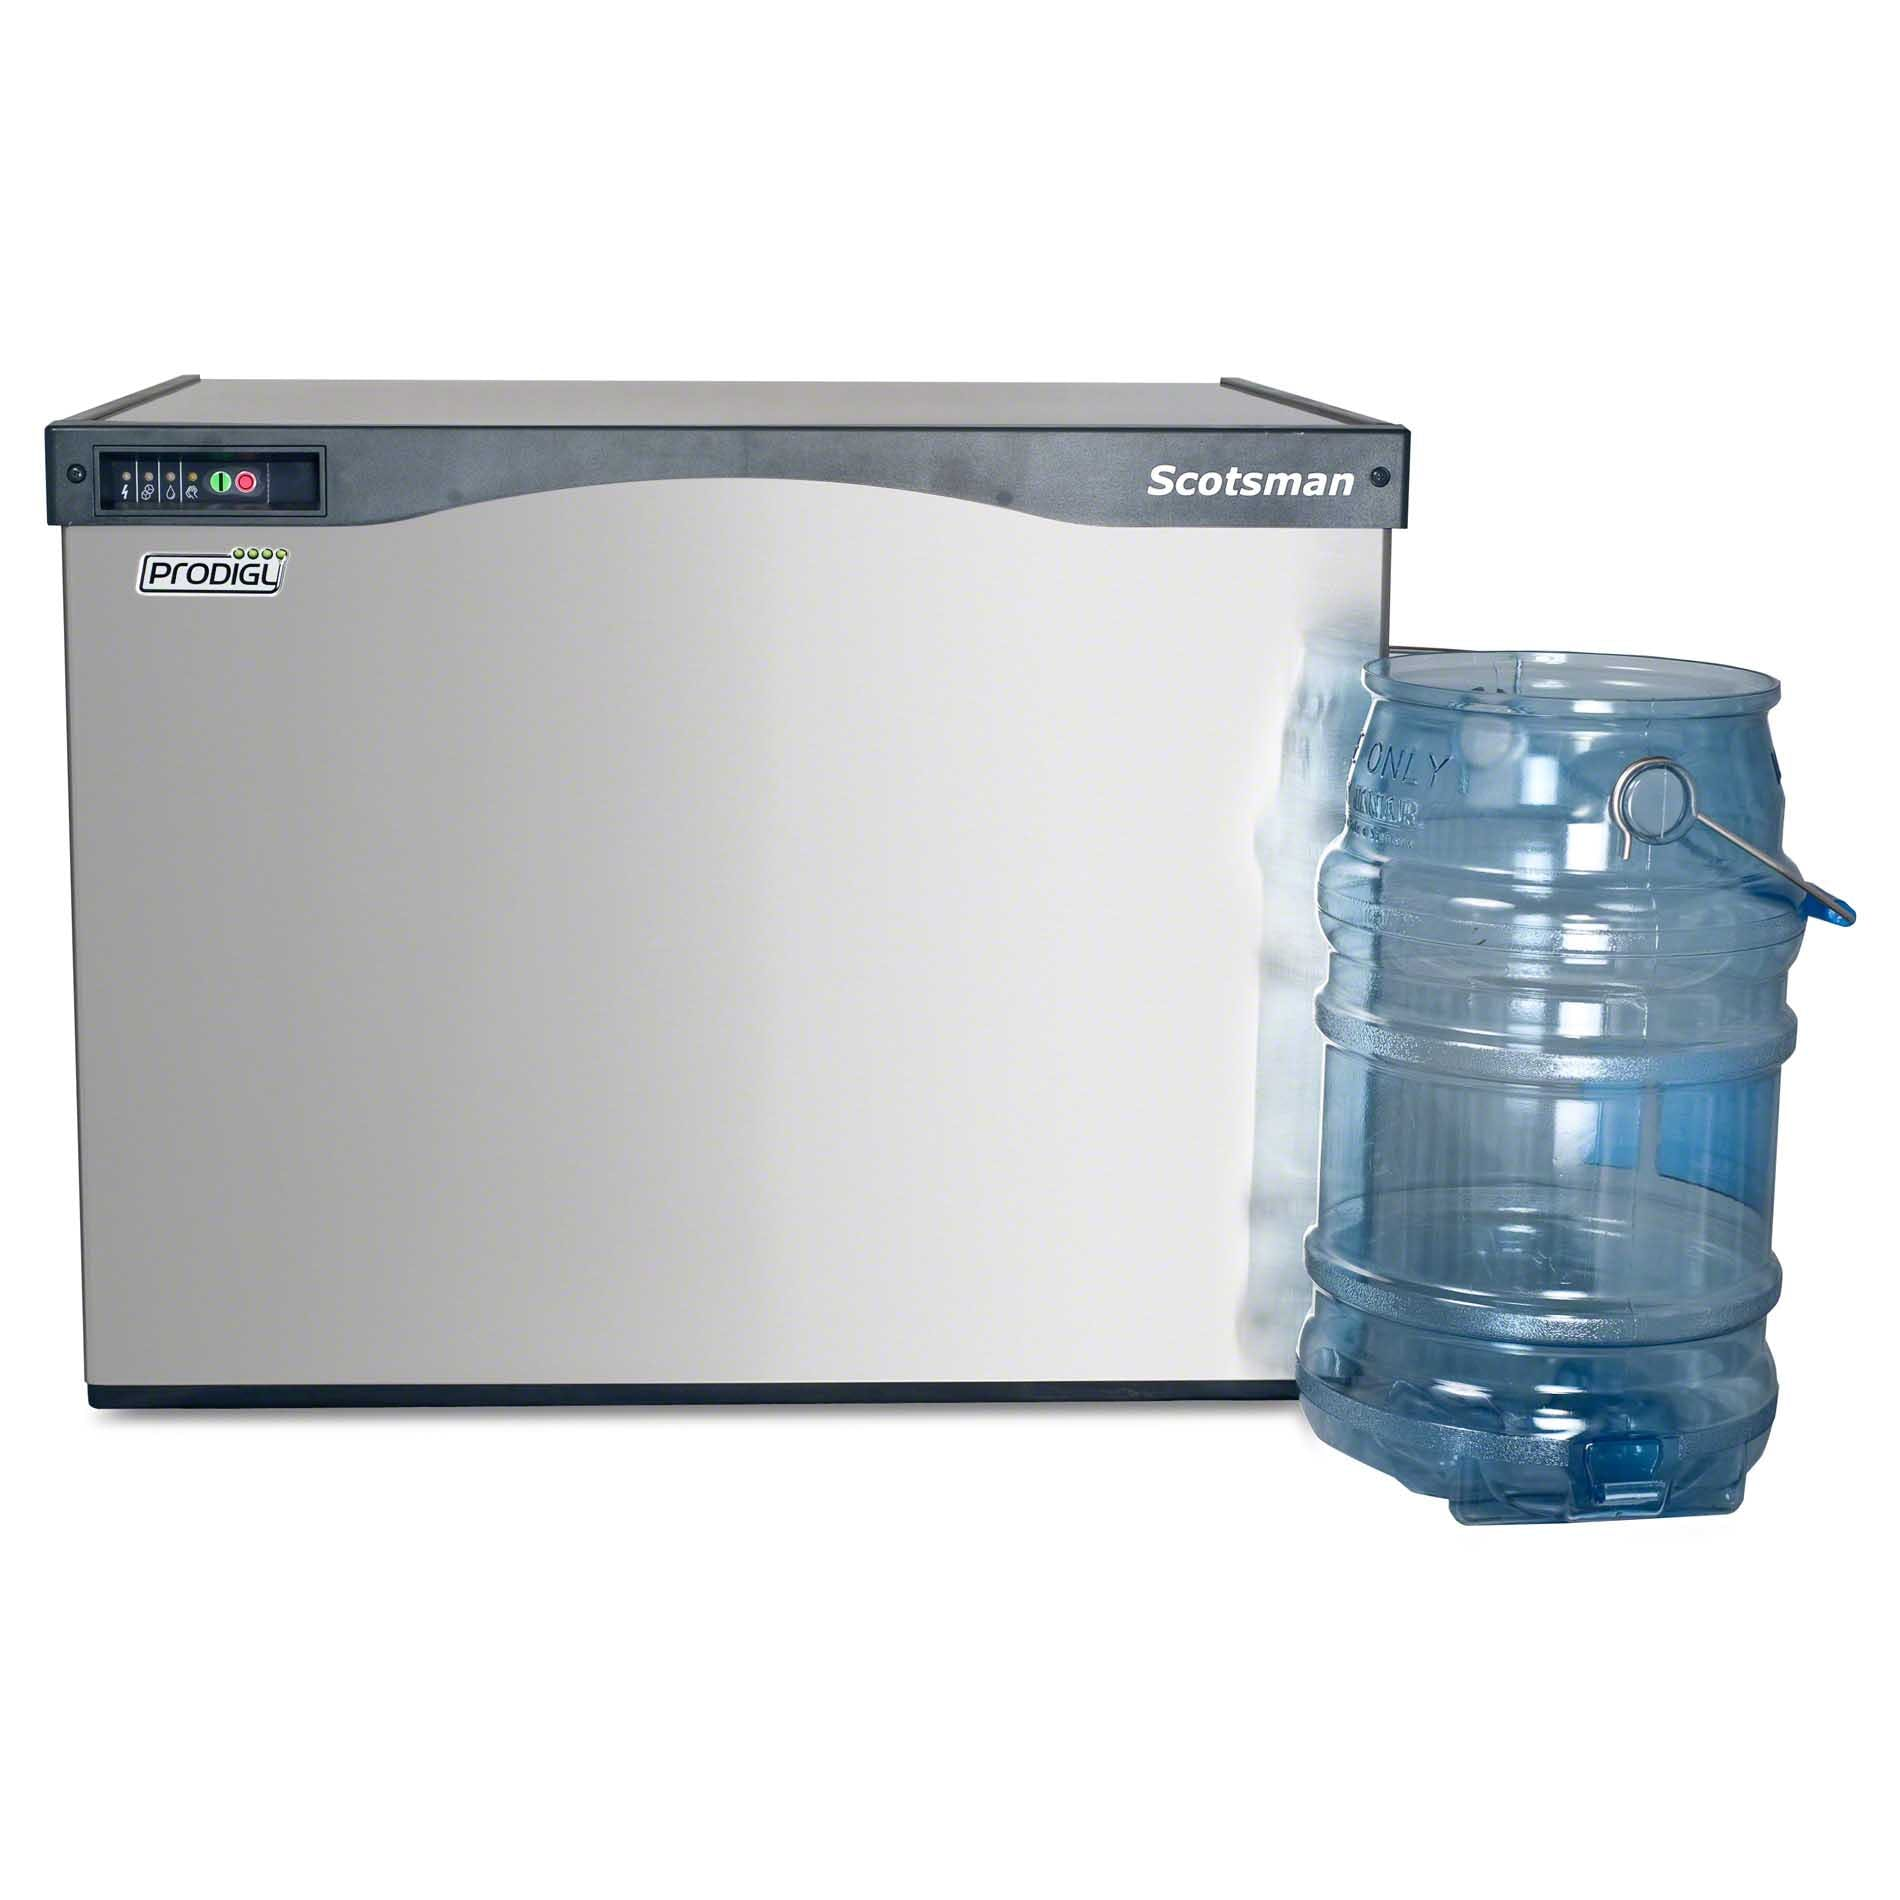 Scotsman - C0330SW-1A 400 lb Half Size Cube Ice Machine - Prodigy Series Ice machine sold by Food Service Warehouse